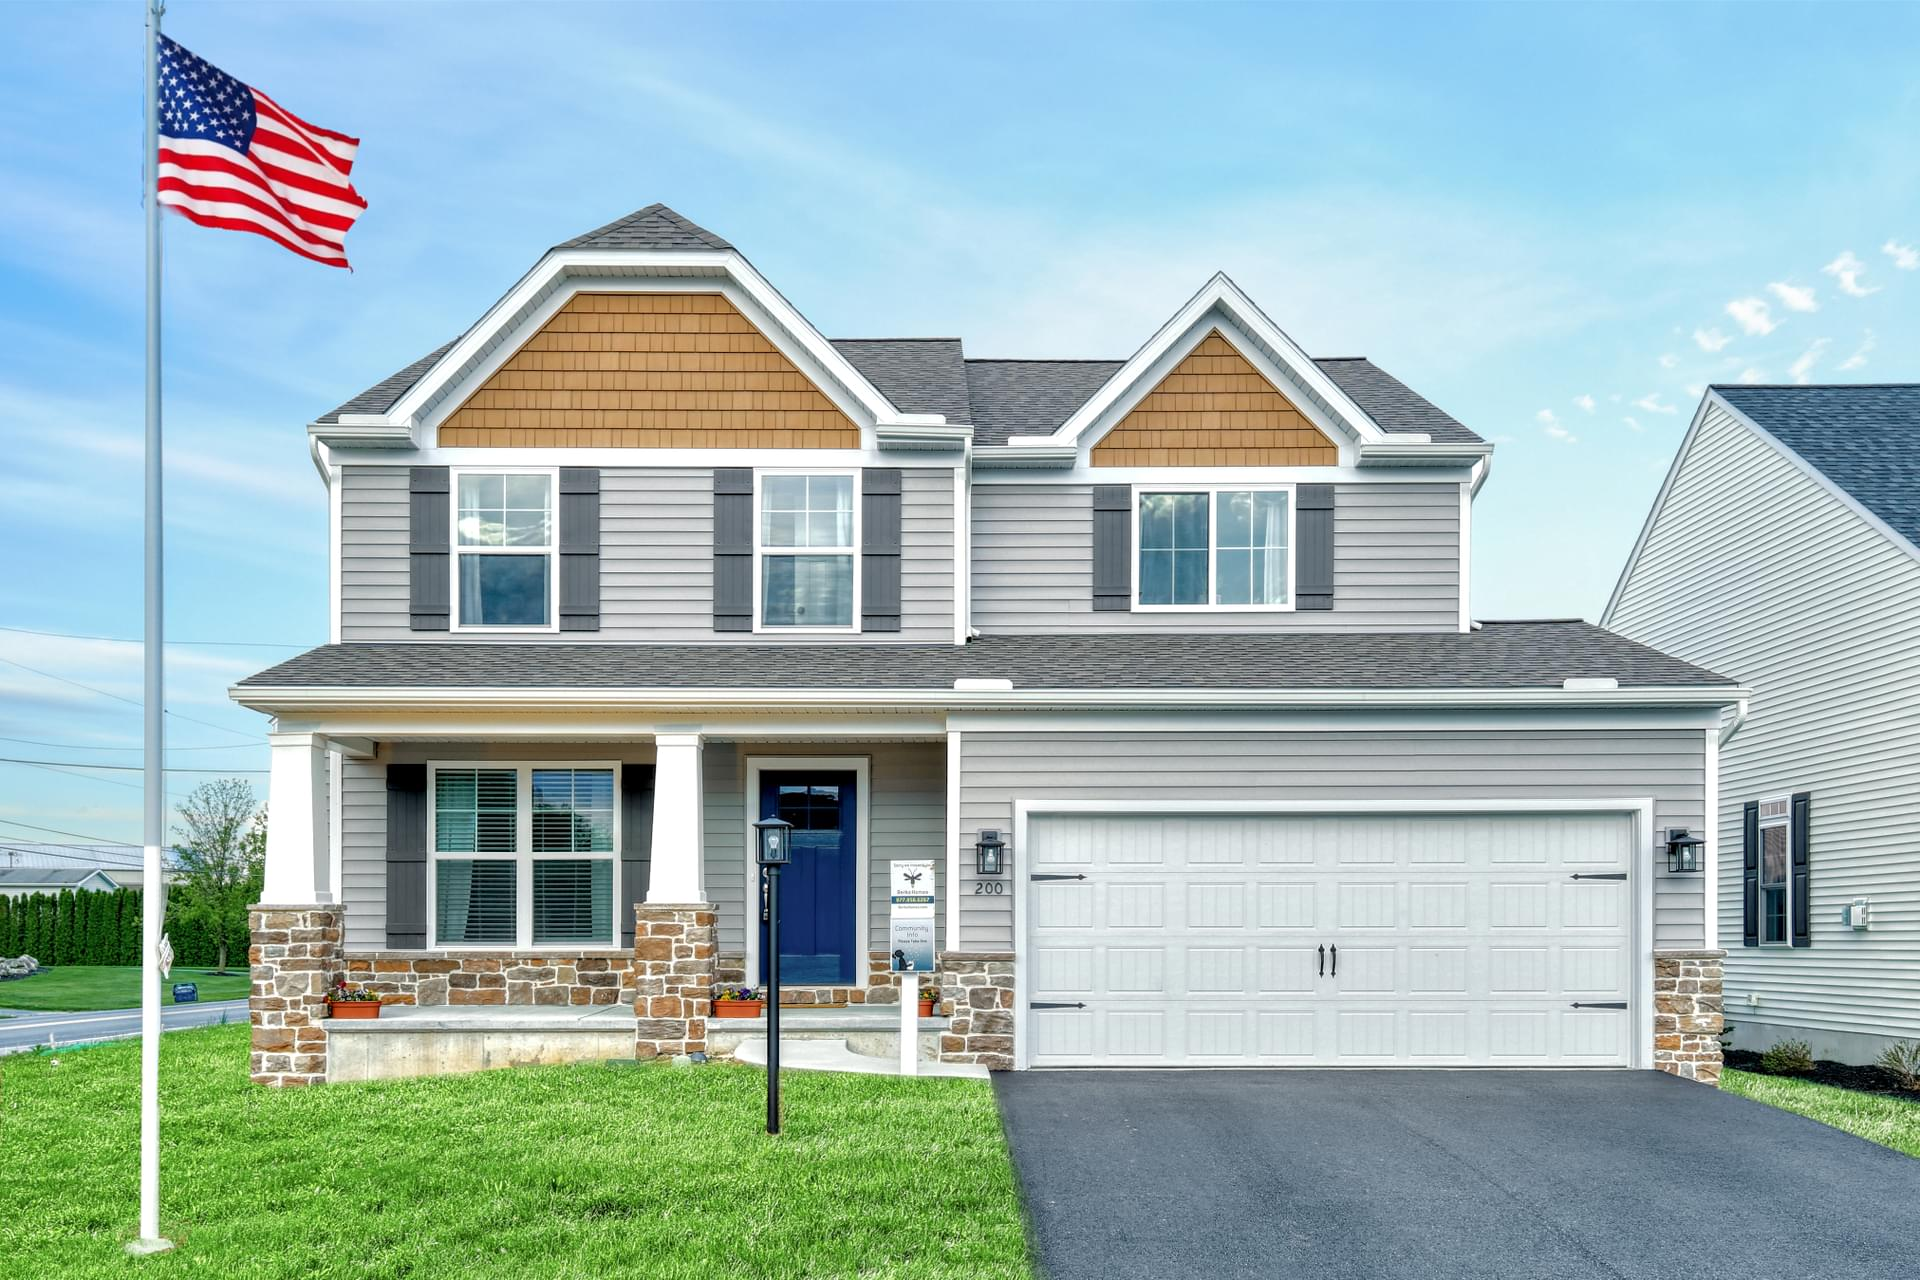 4br New Home in Carlisle, PA